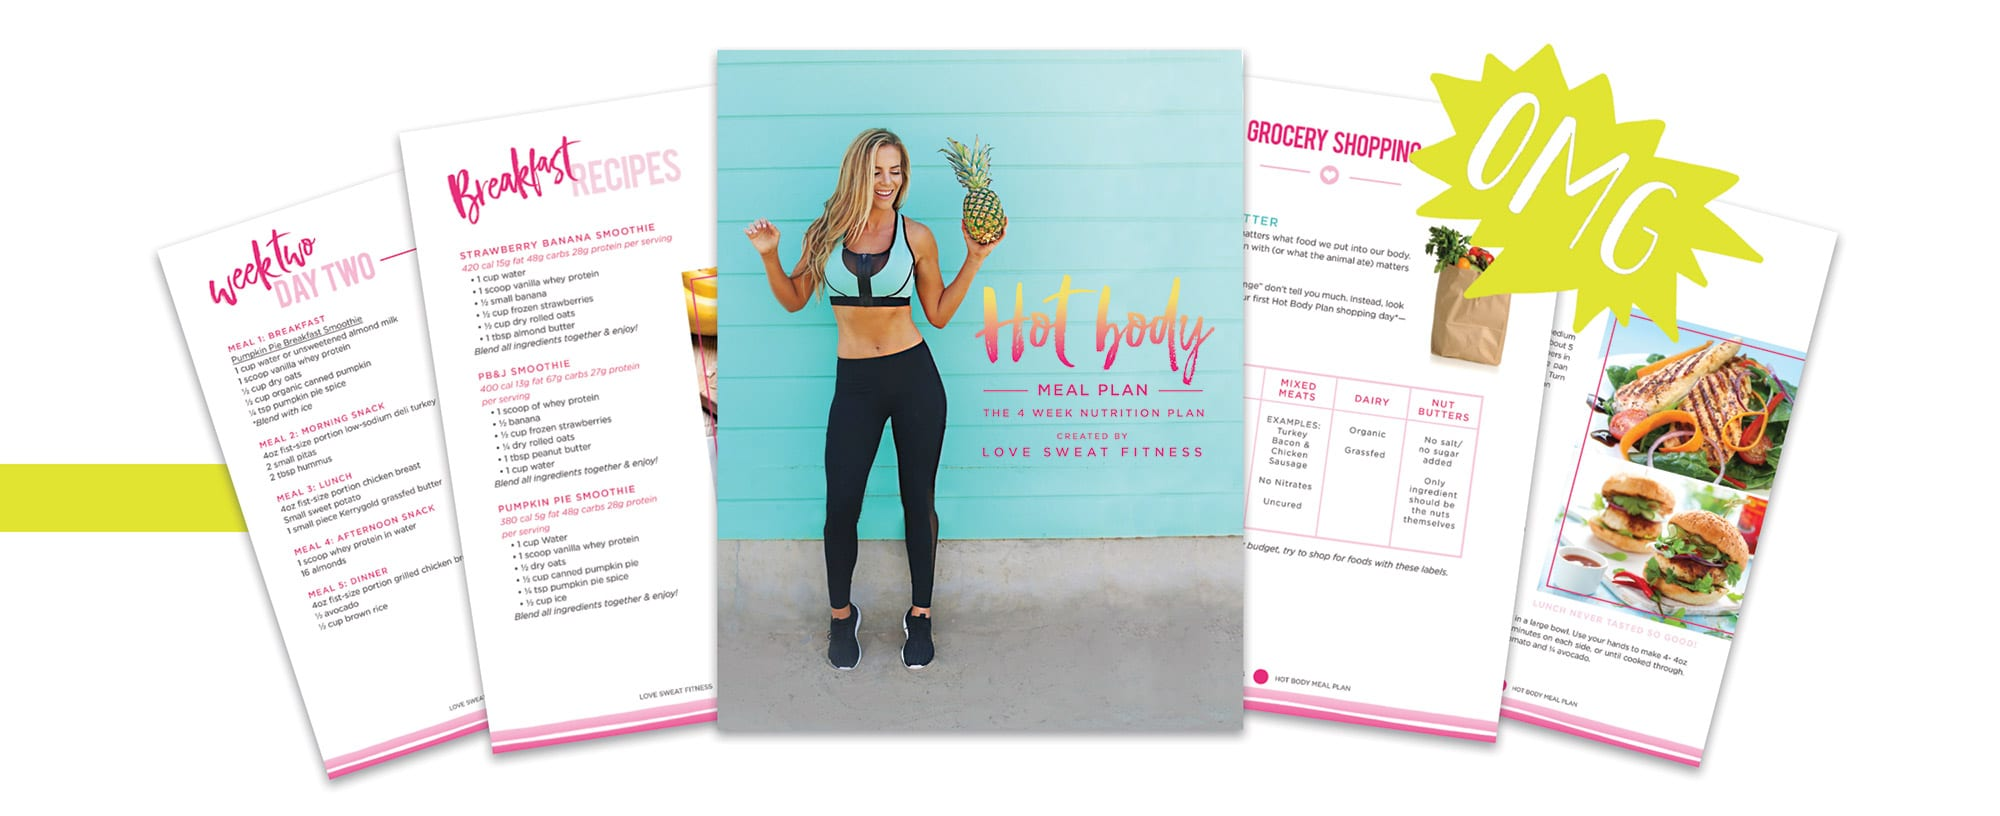 summer shape up series, weekly workout schedule, free daily workouts, daily workout, daily workouts, lorna jane summer shape up, lsf summer shape up series, summer shape up challenge